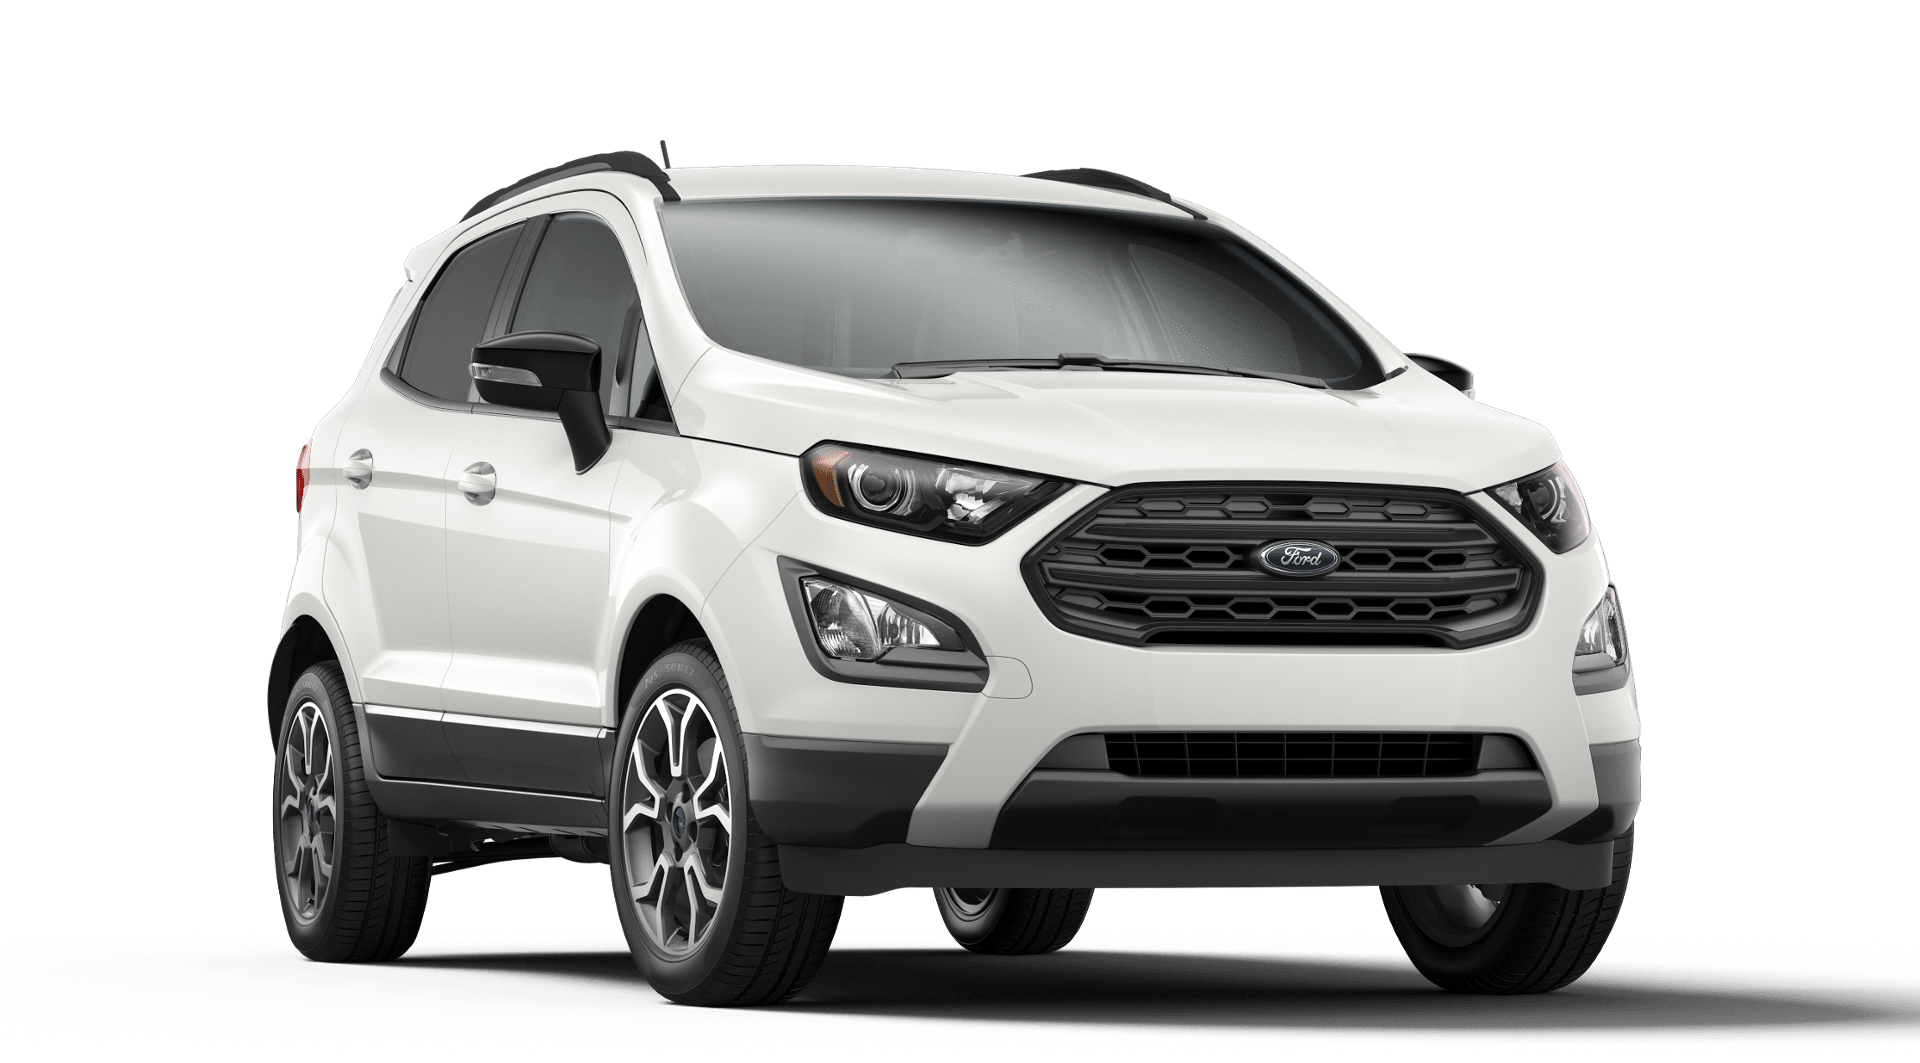 2019-Ford-EcoSport-Diamond-White-Exterior-Color_o